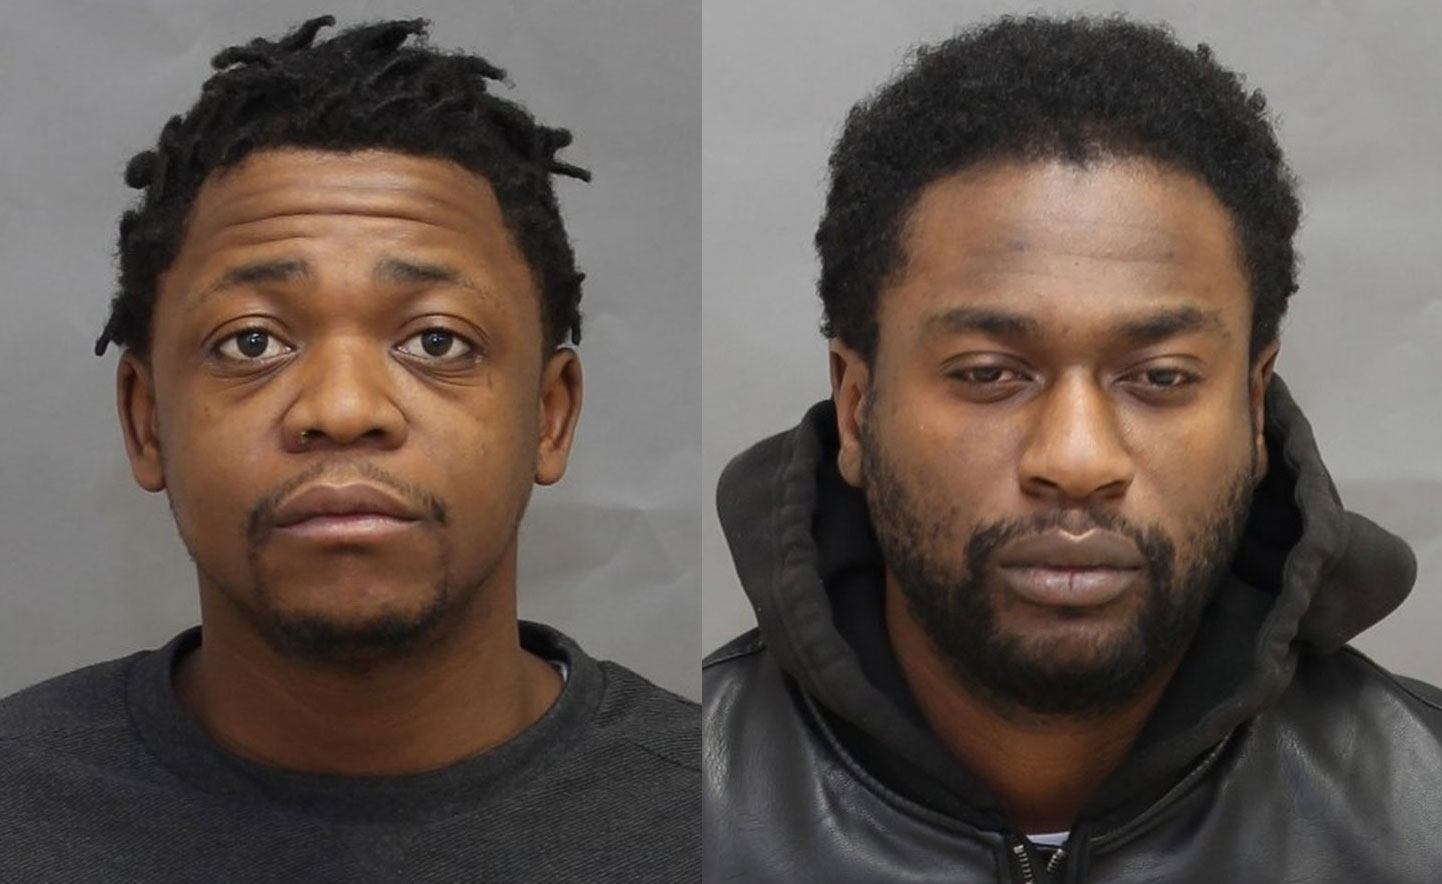 2 men arrested, accused of forcing woman into prostitution